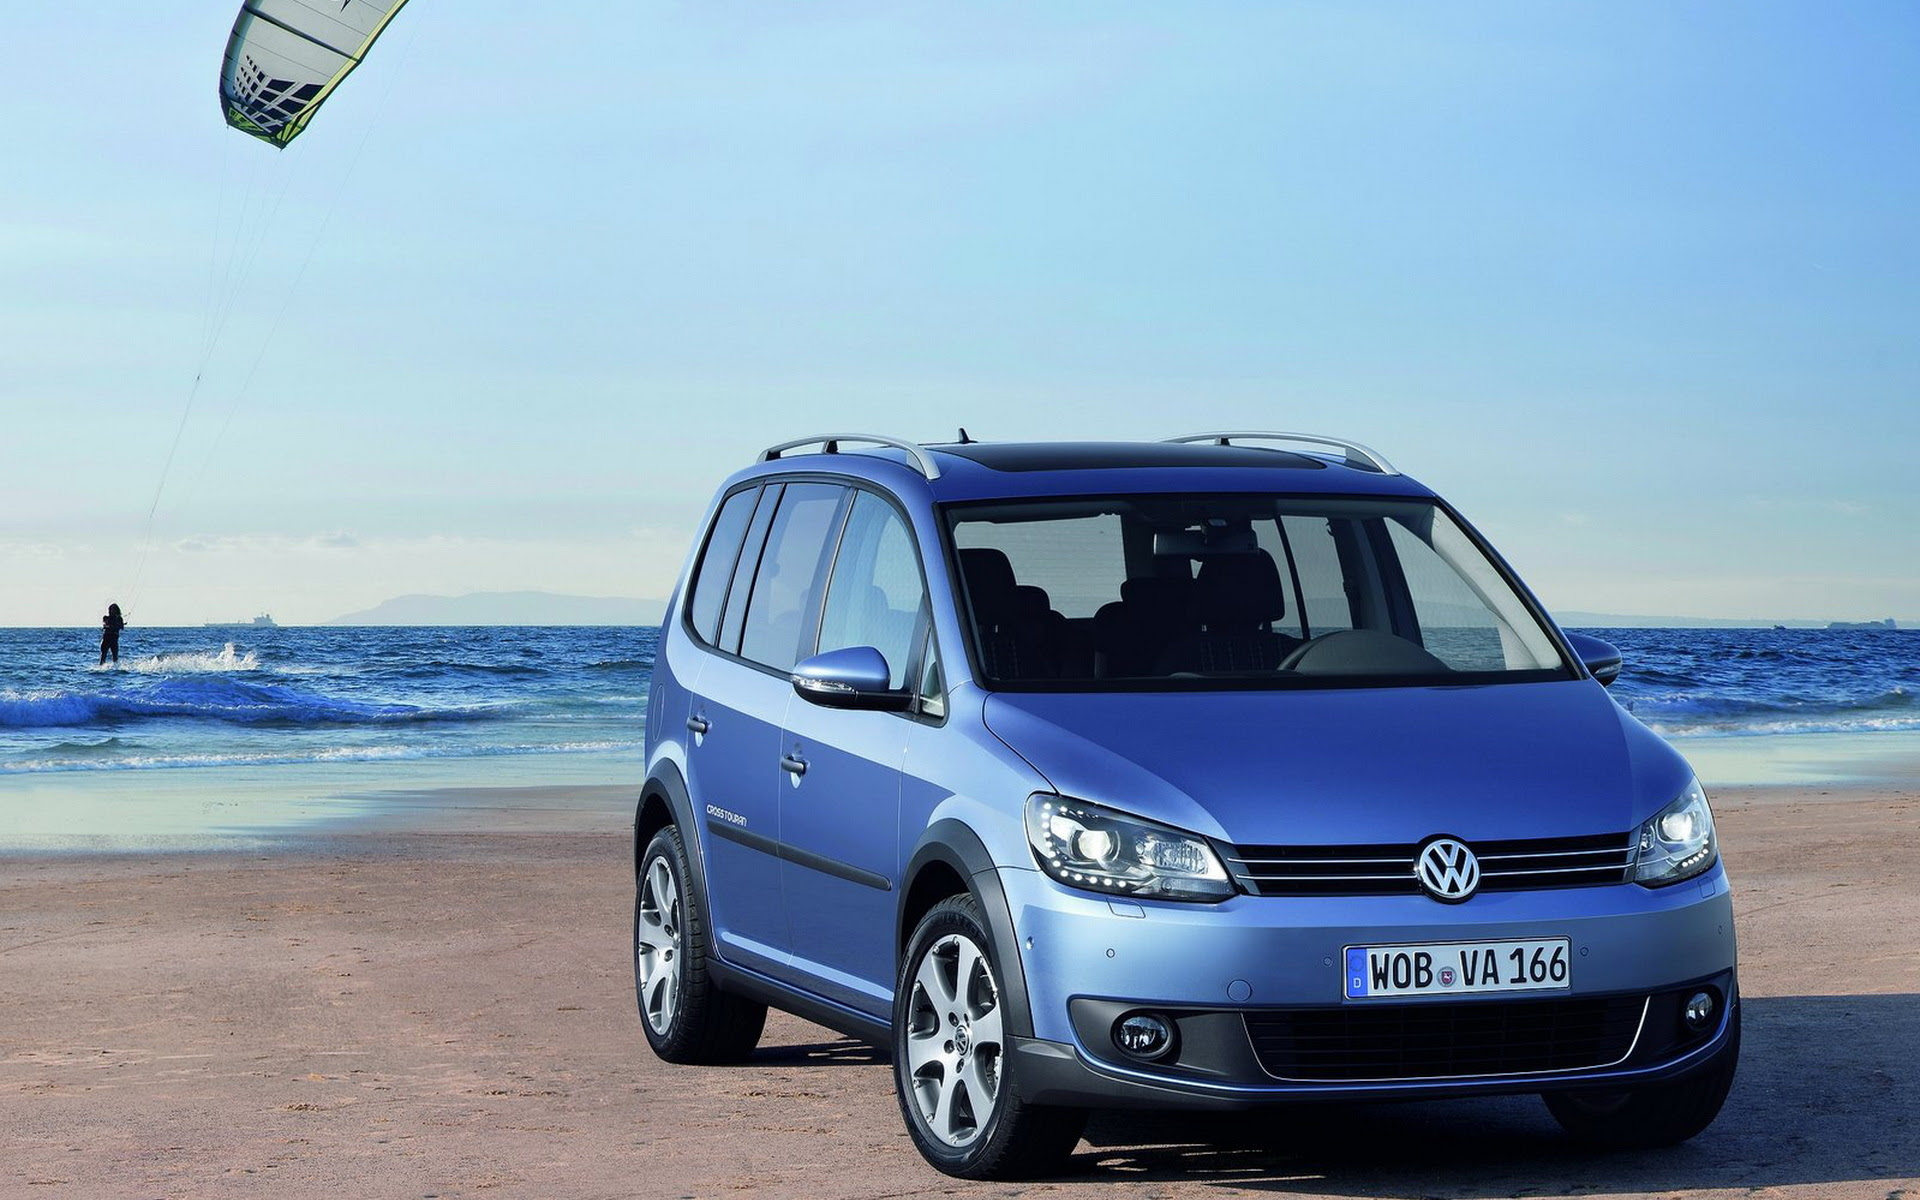 VolkswagenCrossTouran 2011 wallpapers and images  wallpapers, pictures, photos